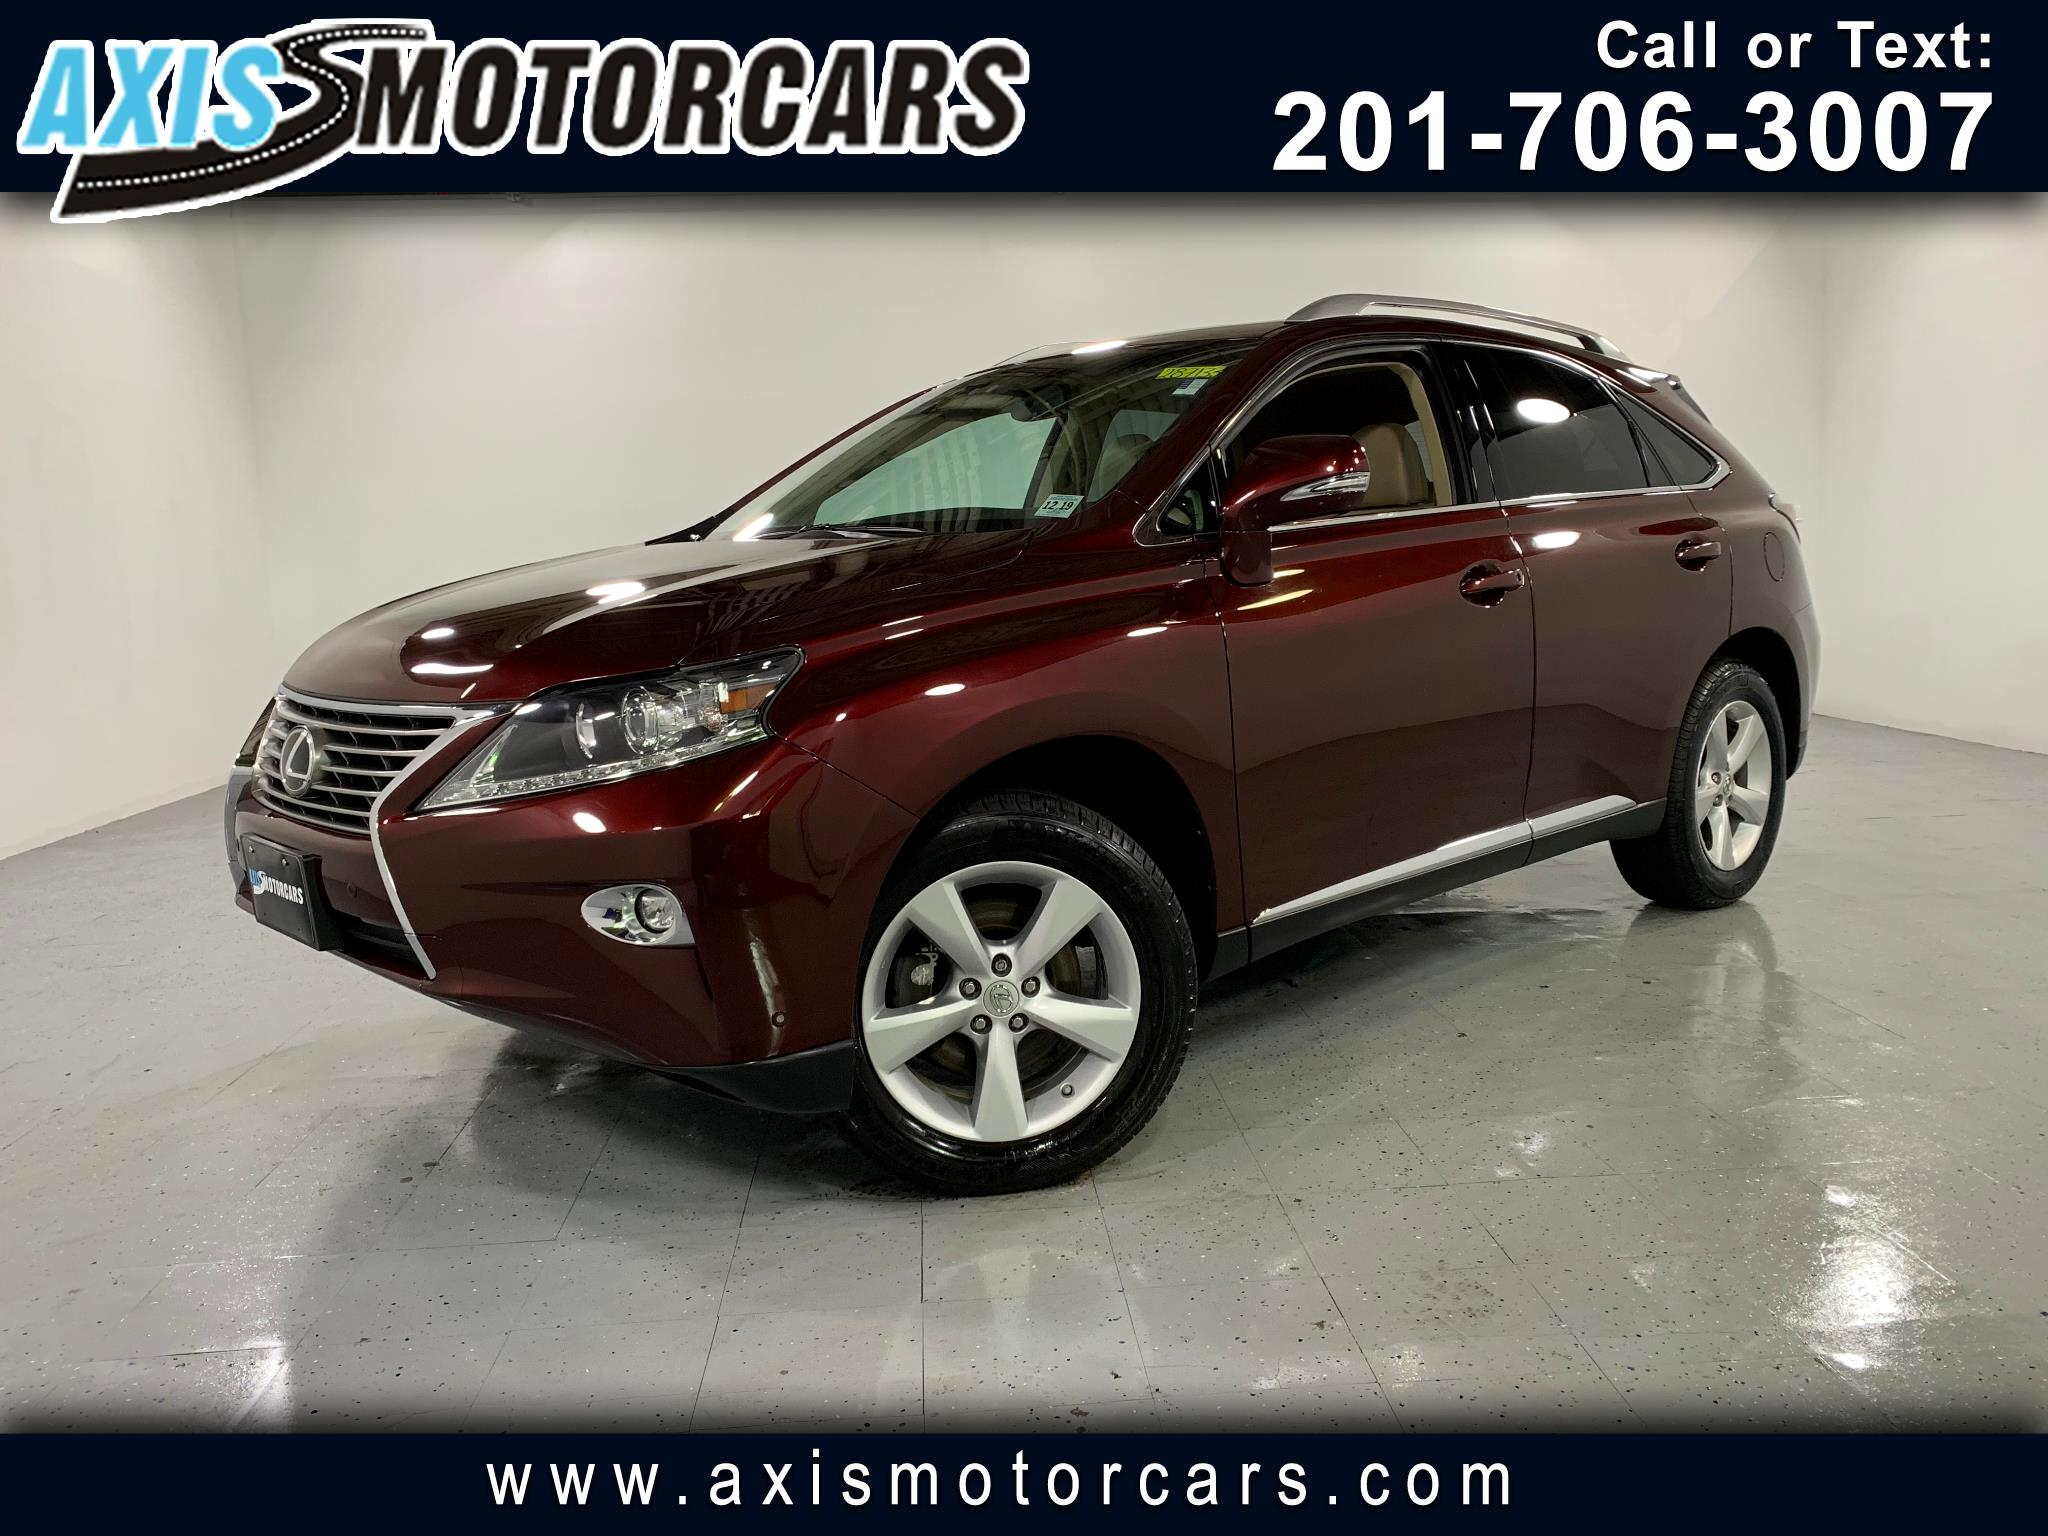 2015 Lexus RX 350 w/Navigation Bakup Camera Sunroof